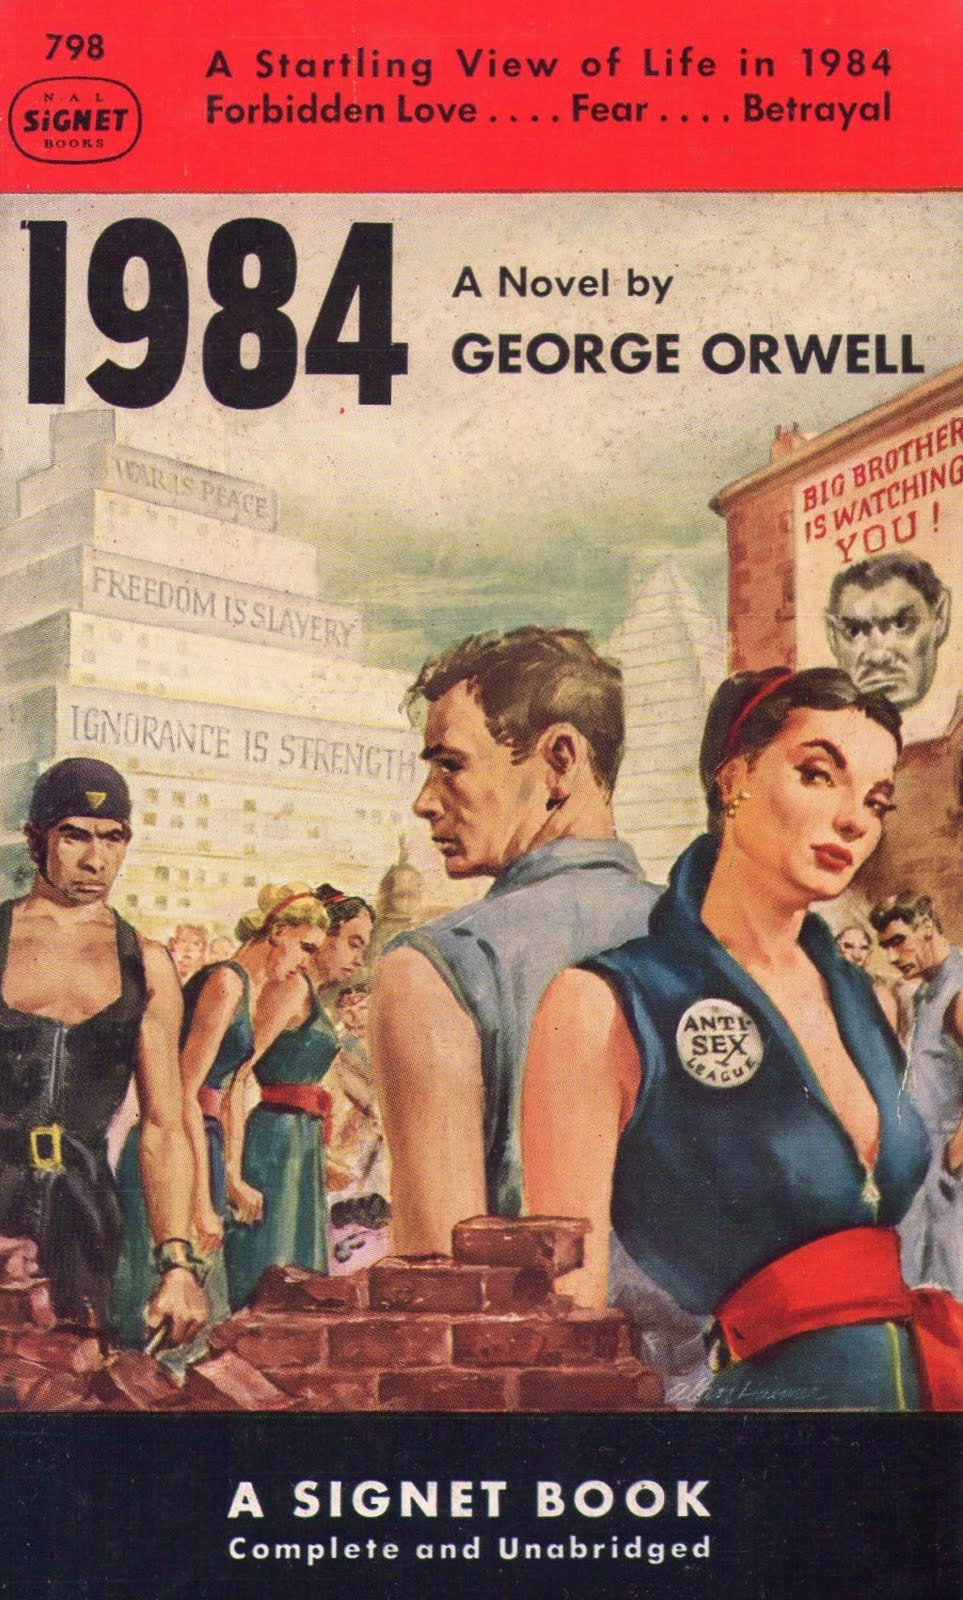 orwell and swift Jonathan swift's gulliver's travels and george orwell's animal farm there are many different ways to reveal one's perception of society.